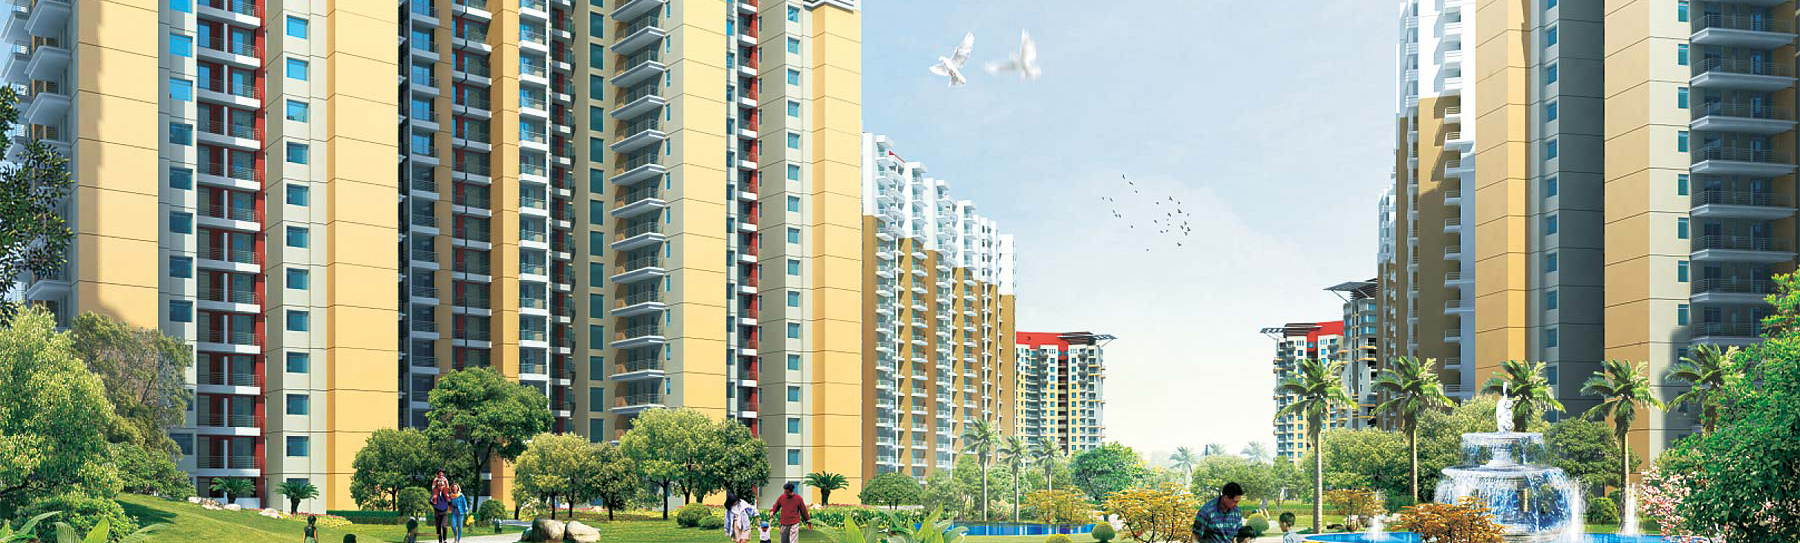 Express Park View IIGreater Noida